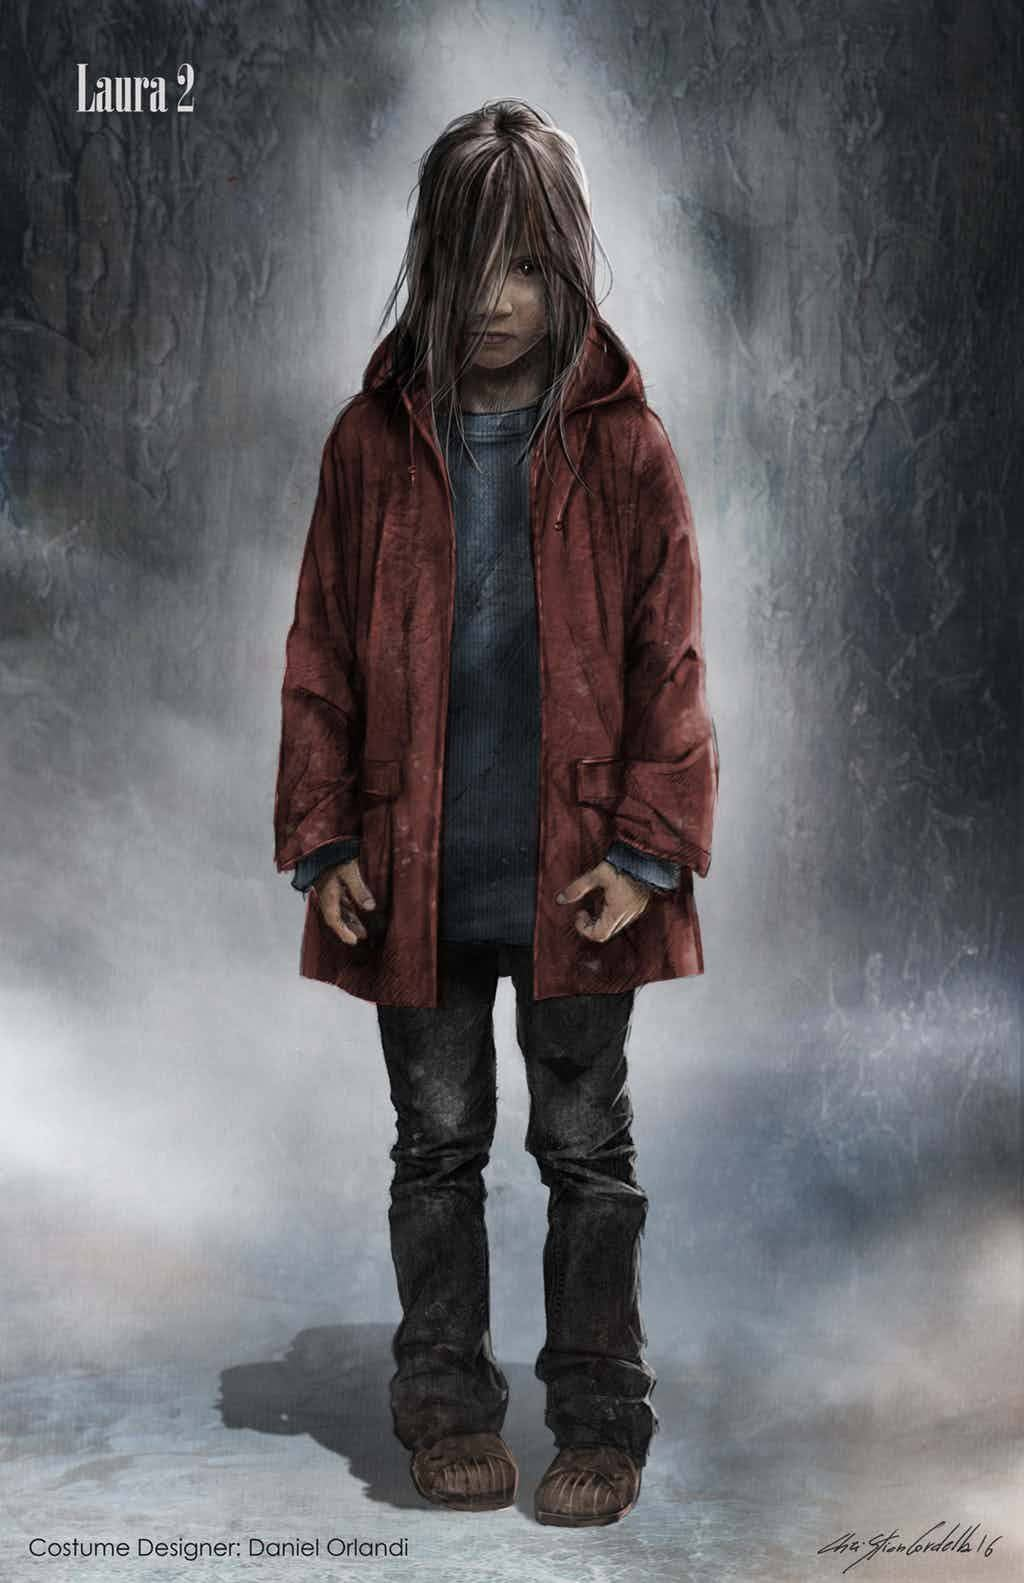 Logan-Concept-Art-Laura-2-l